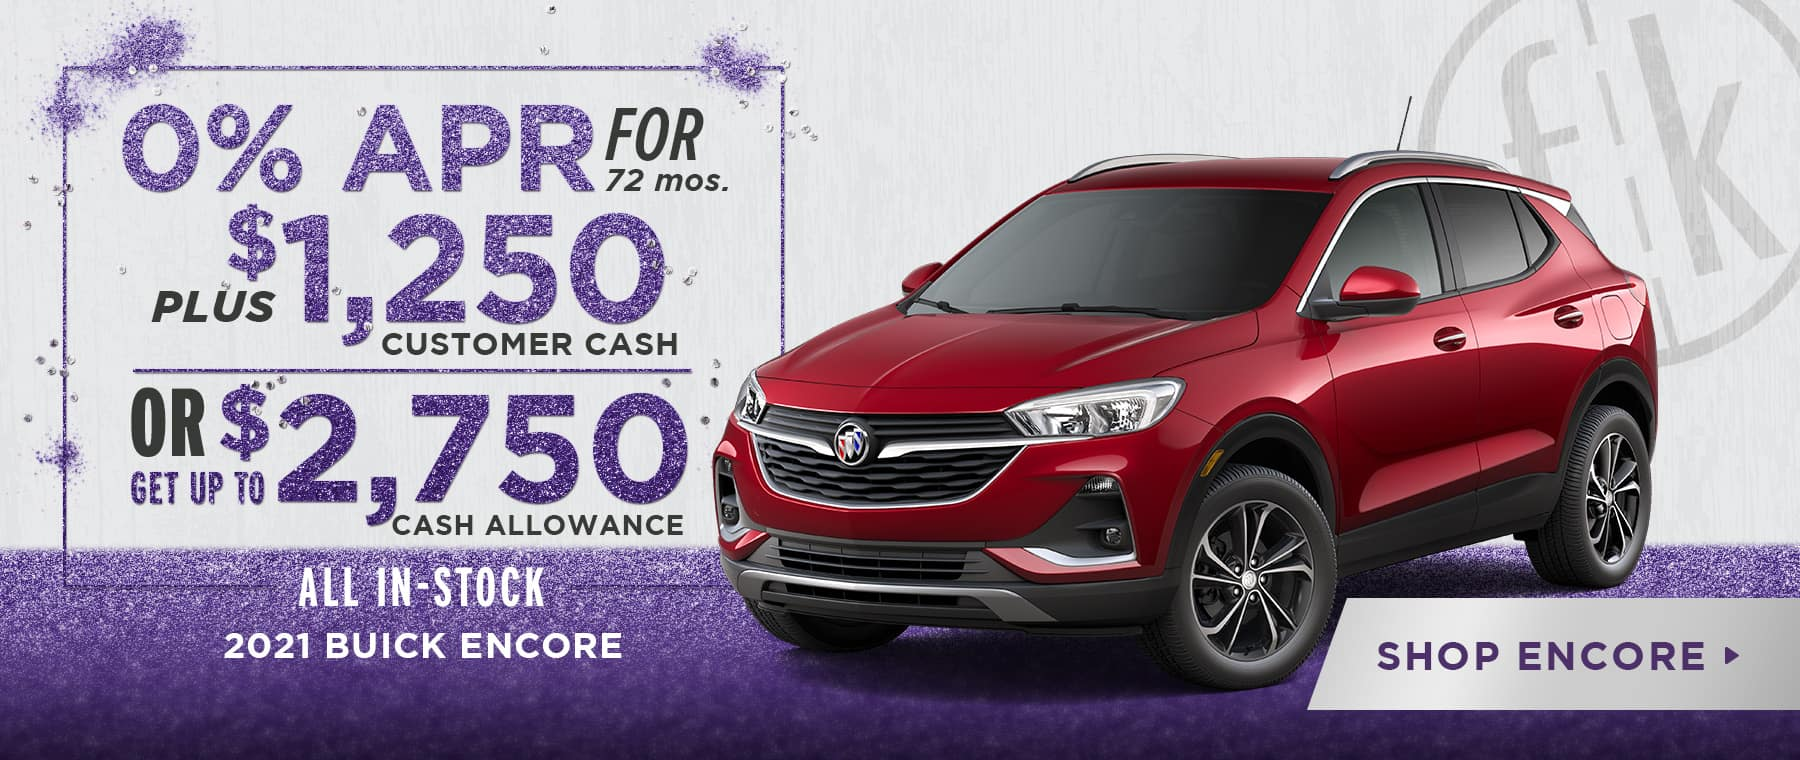 0% for 72 mos. PLUS $1,250 Customer Cash OR Get Up To $2,750 Cash Allowance 2021 Encore